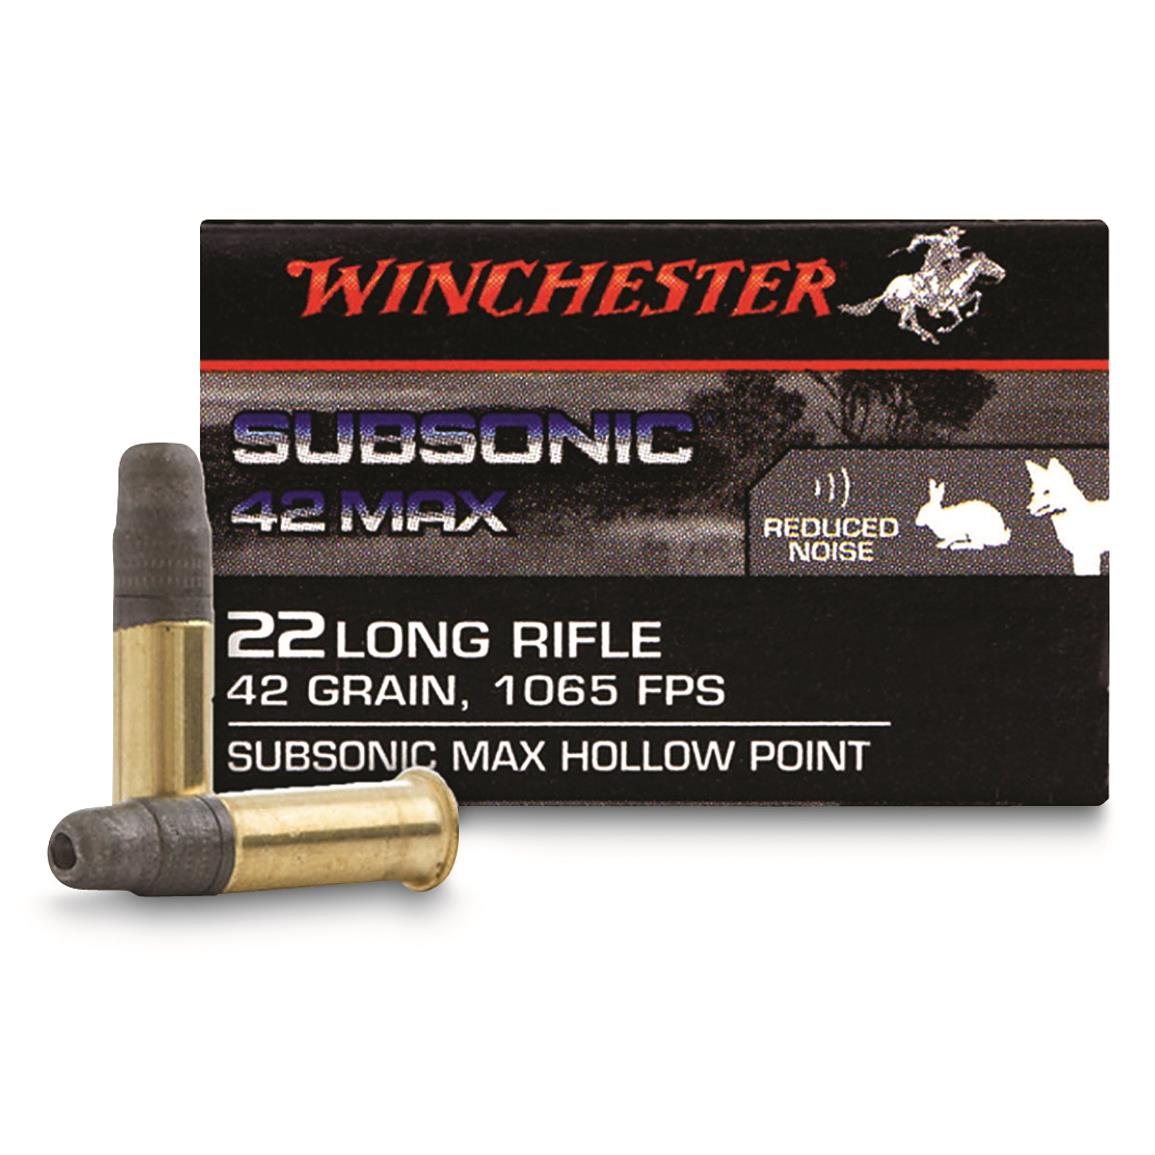 Winchester Subsonic 42 MAX, .22LR, Lead Hollow Point, 42 Grain, 50 Rounds